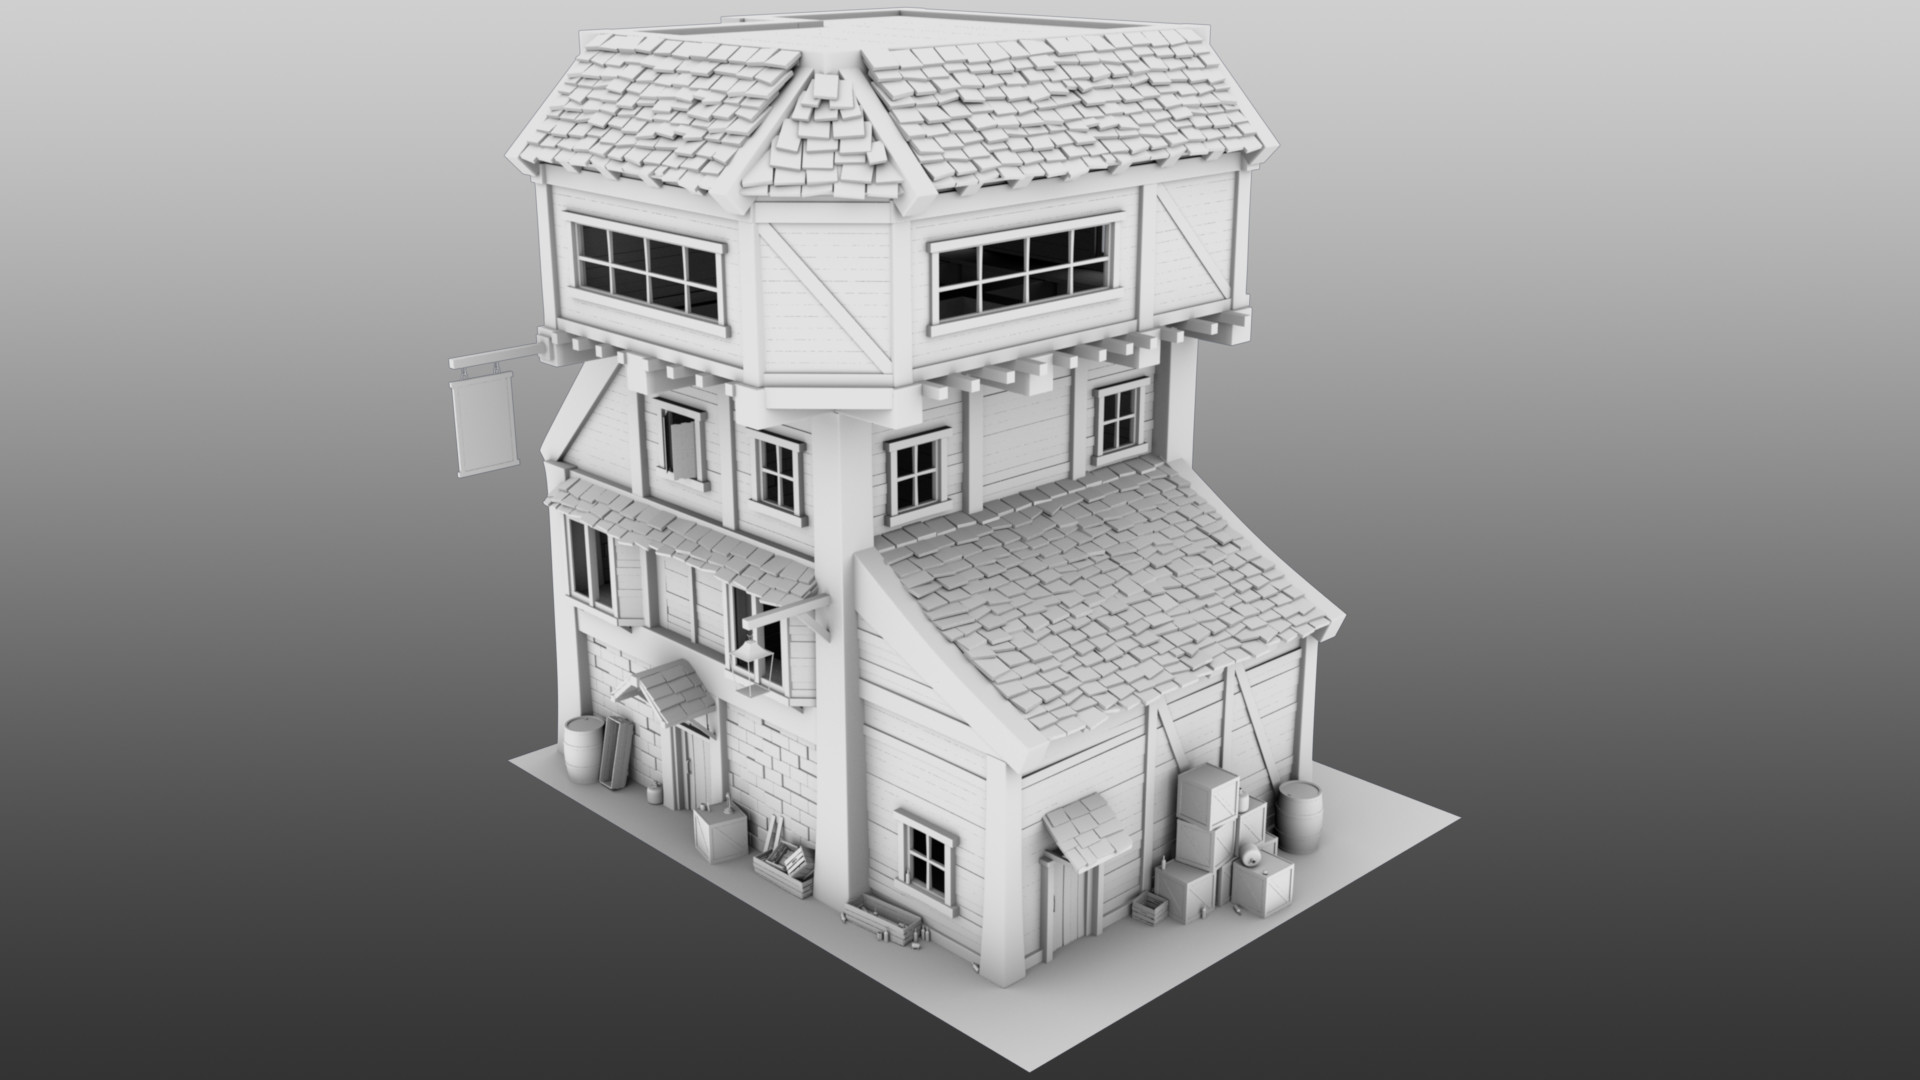 Sam donez tavern render 300dpiao dark gradient